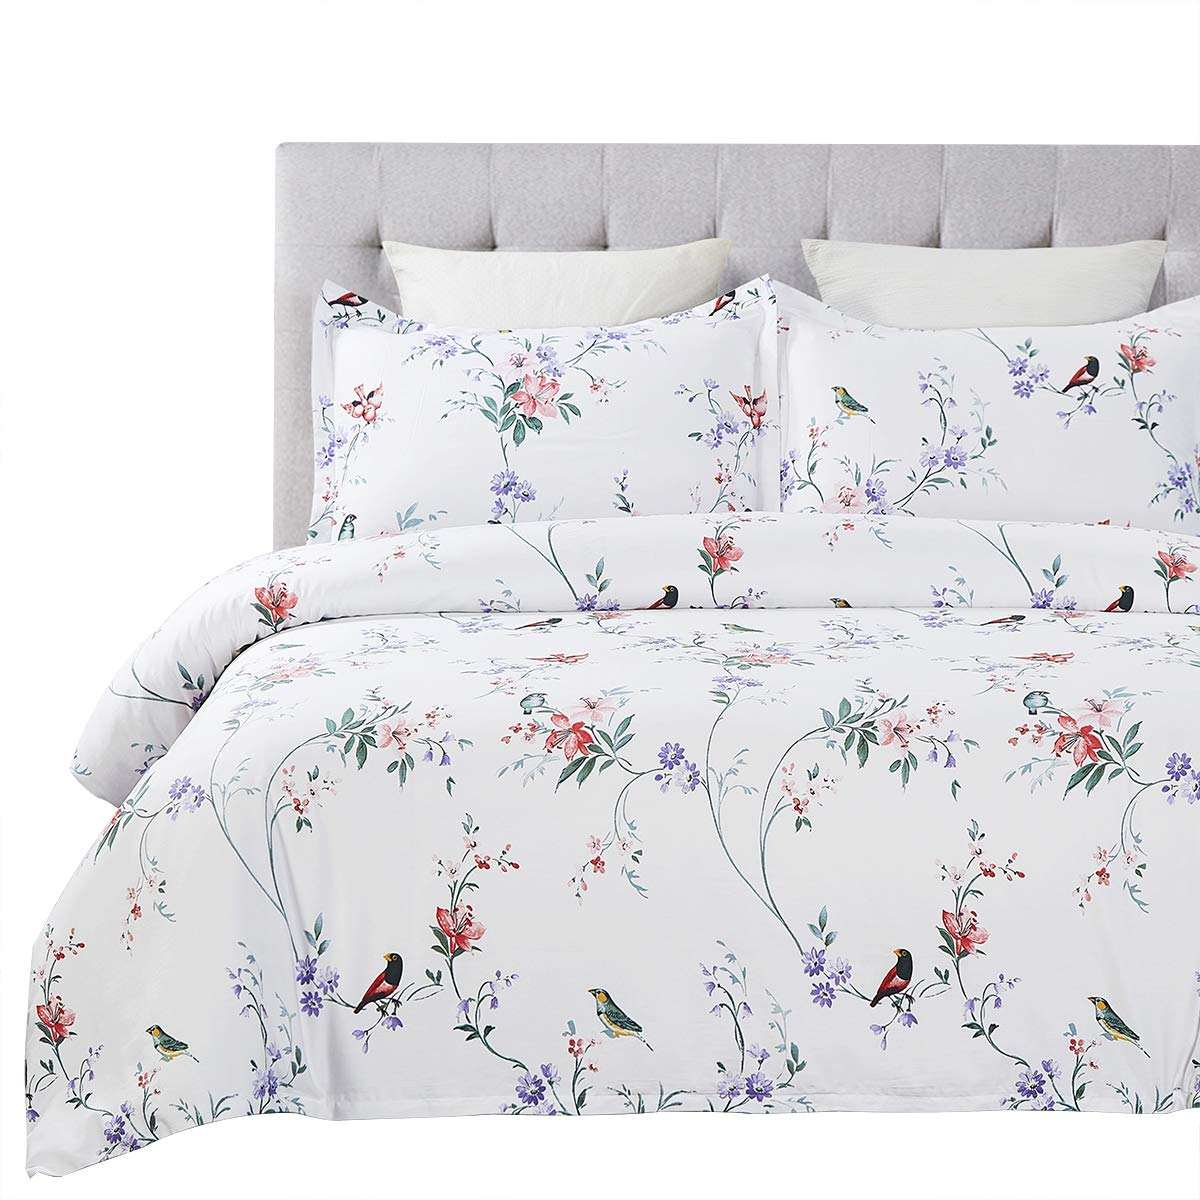 Vaulia 250-Thread-Count 100% Cotton Duvet Cover Set, Twill Weave Fabric Structure - Queen, White Flower and Birds